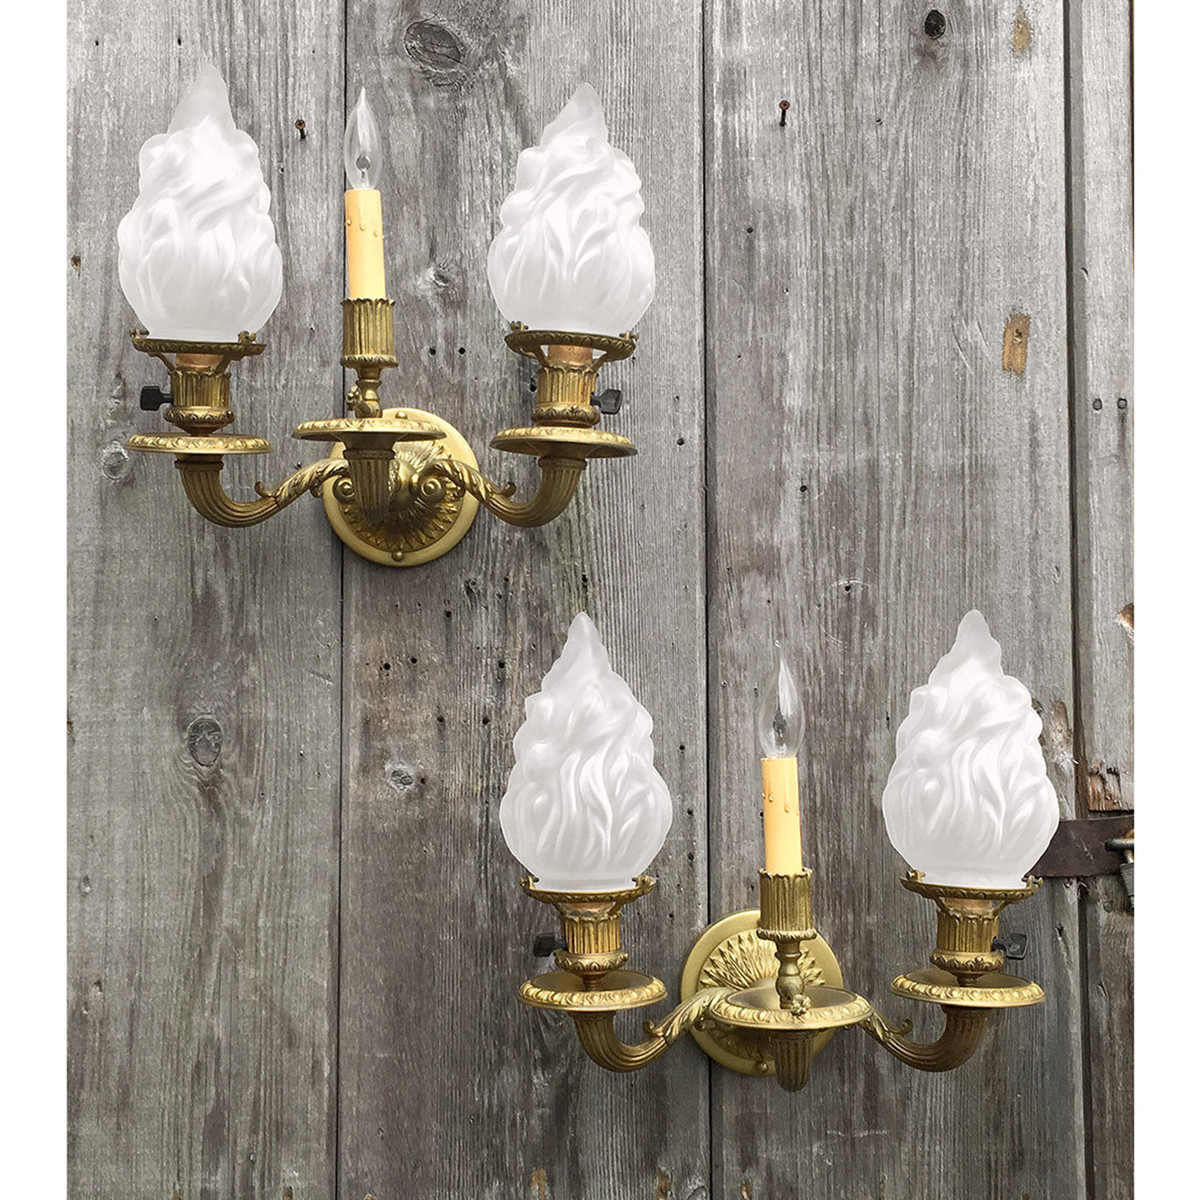 607577 - Pair of Antique Neoclassical Gas & Electric Style Wall Sconces